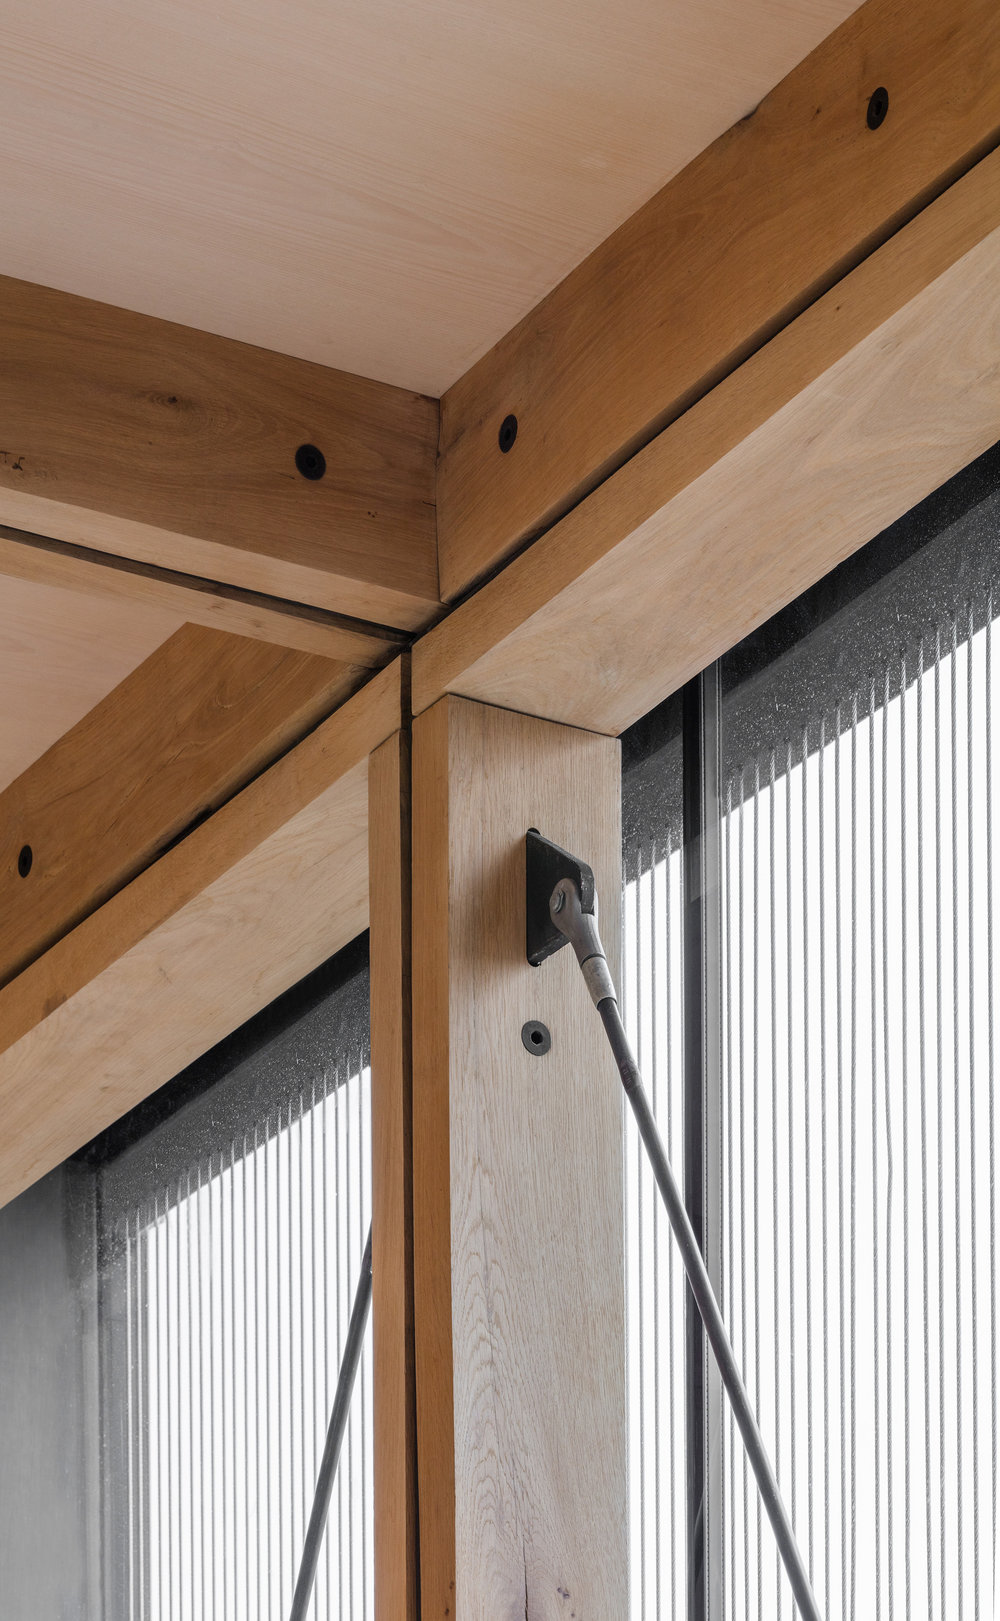 Union-Wharf-Islington-London-Oak-Ash-Roof-Extension-Detail-Structure-Architect.jpg